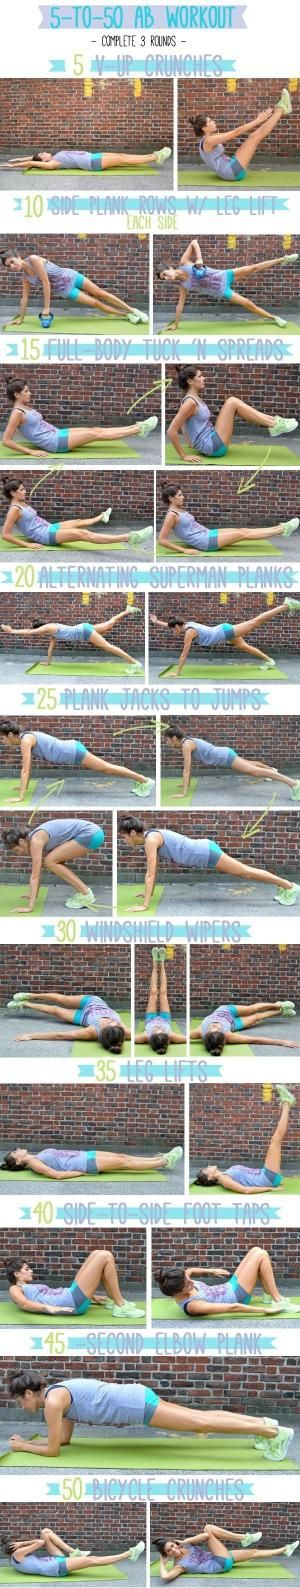 43 Belly Burning Ab Workouts For A Strong & Toned Stomach | BiggerButti by ivy